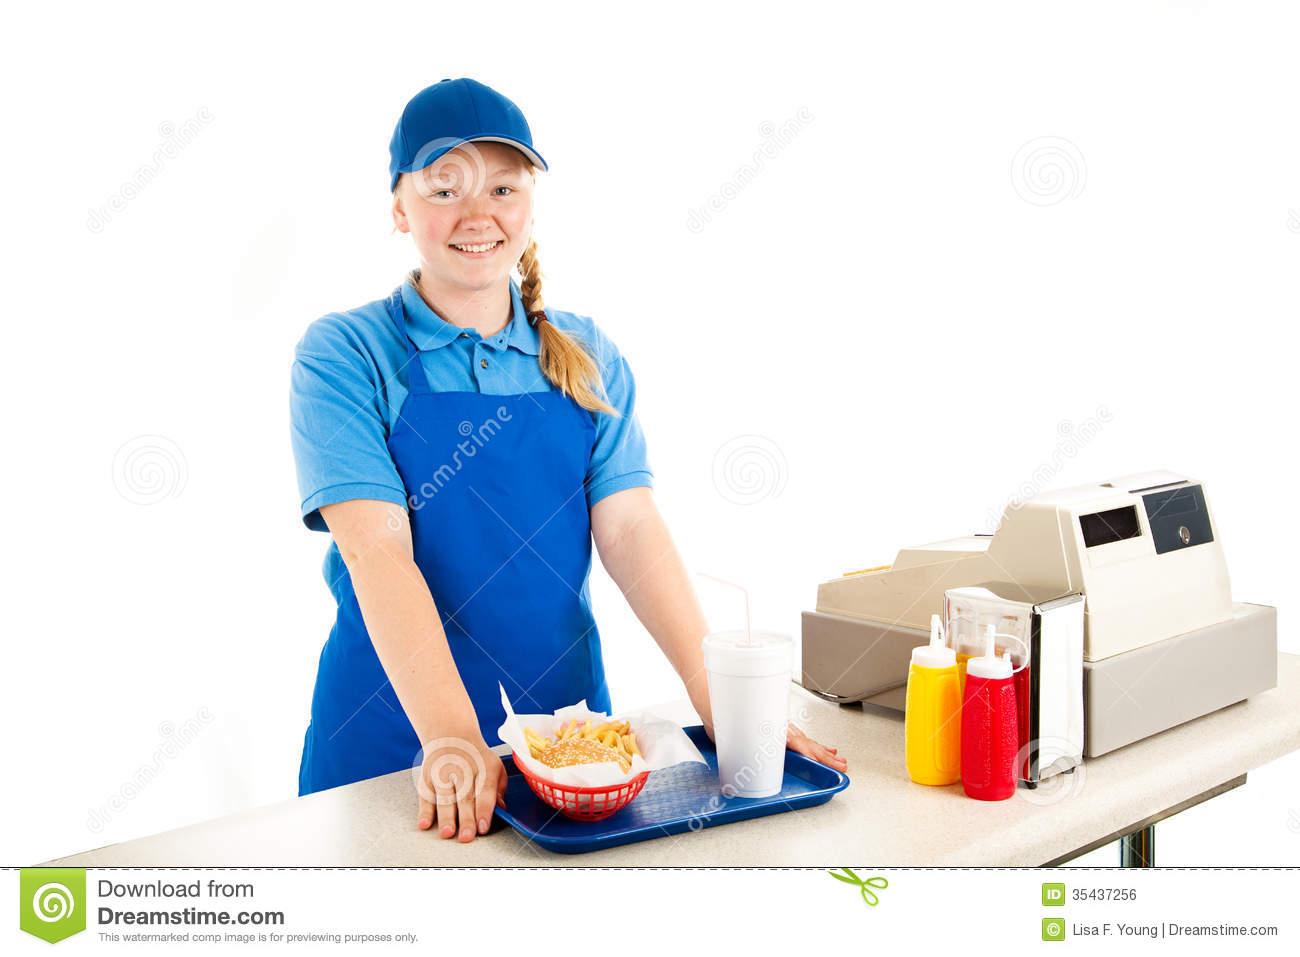 How To Work A Fast Food Cashier